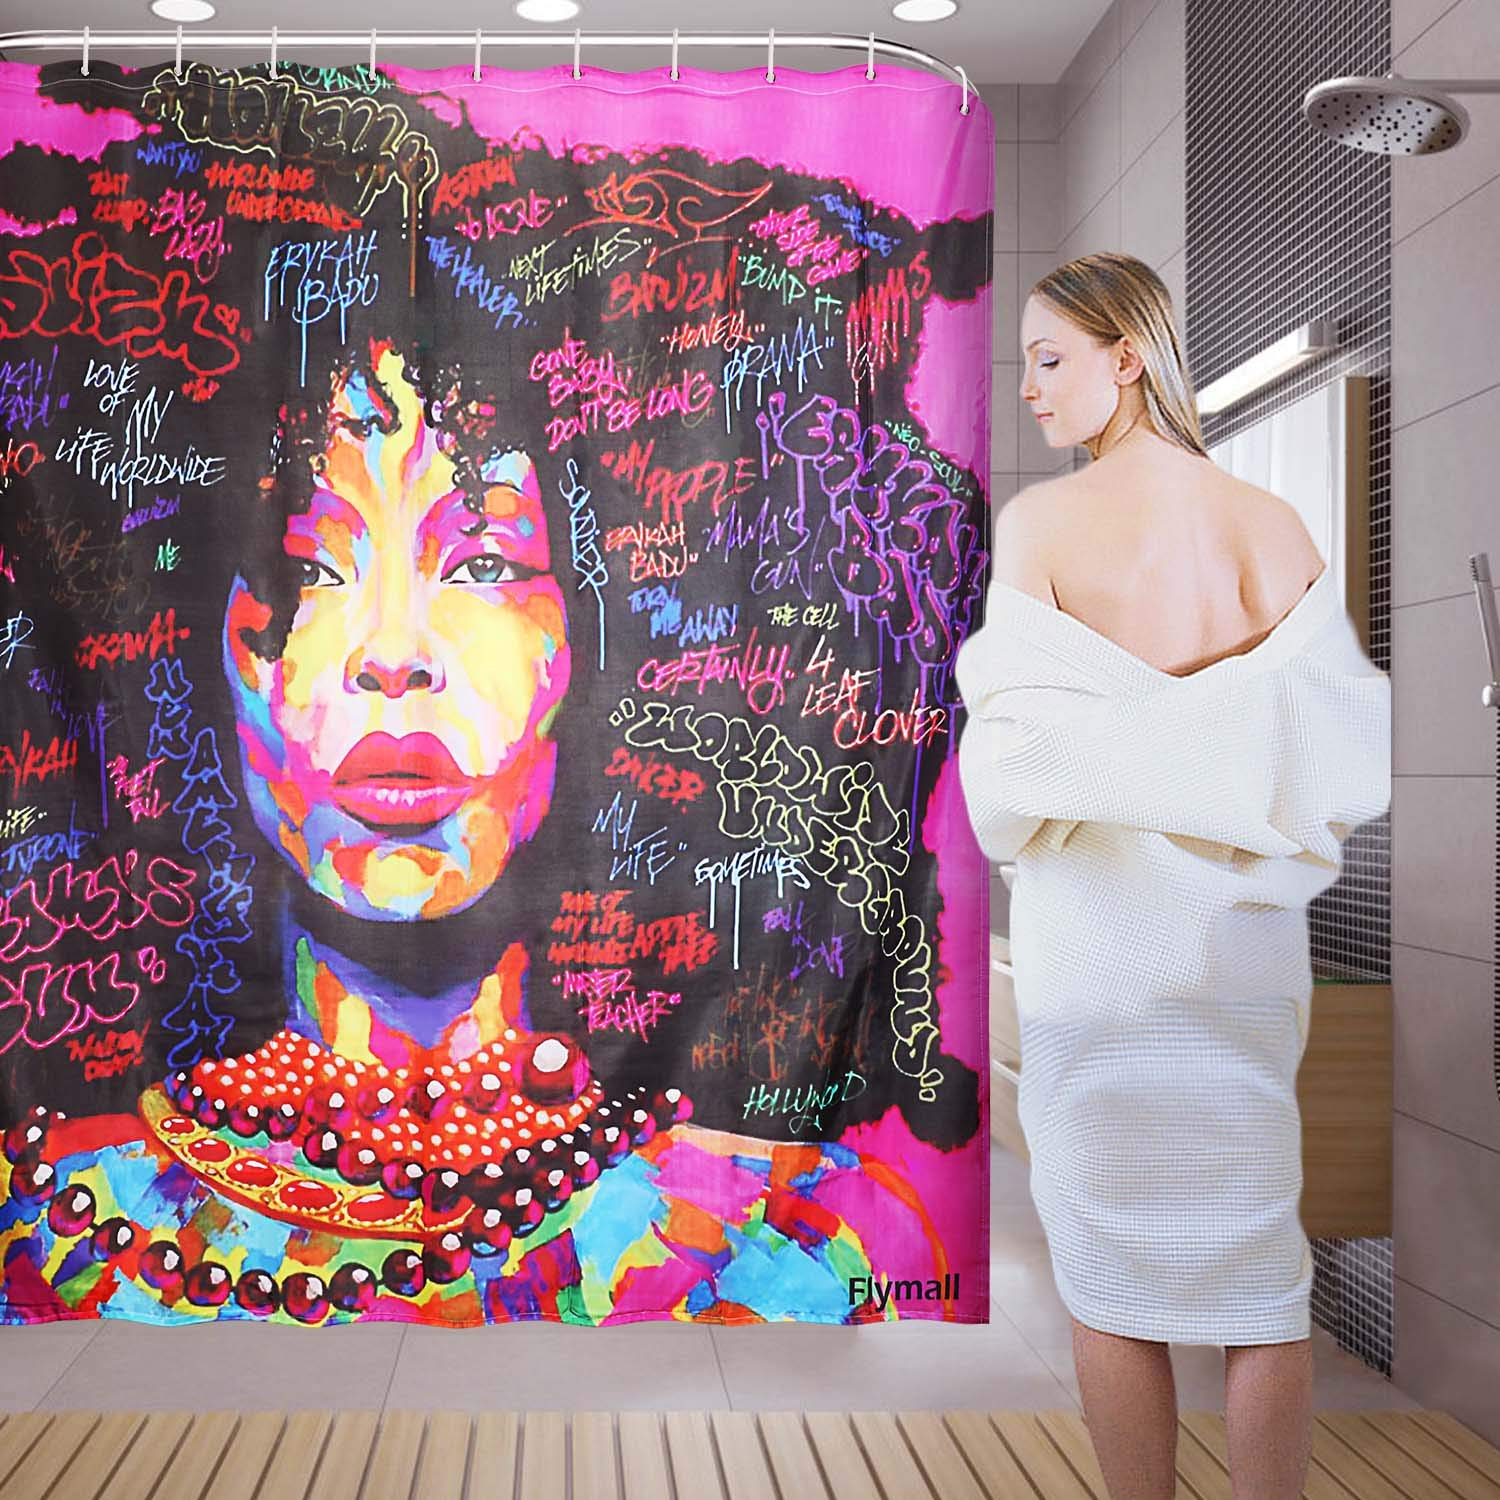 Flymall Shower Curtain Set,Waterproof Washable Polyester Fabric African Women Painting Shower Curtain Including 12-Pack Shower Hooks for Home Bathroom Decor(71 x 71)